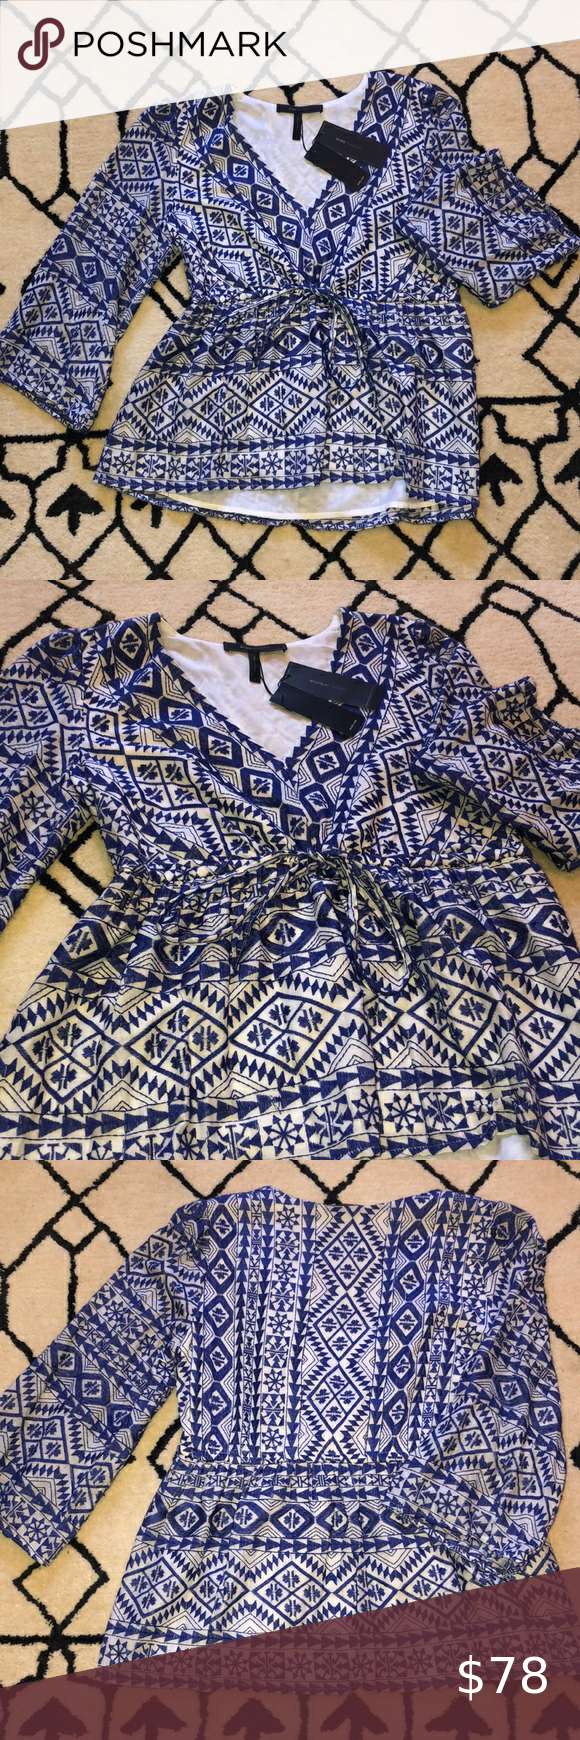 NWT BCBG 3/4 sleeve V neck embroidered top Sz S NW